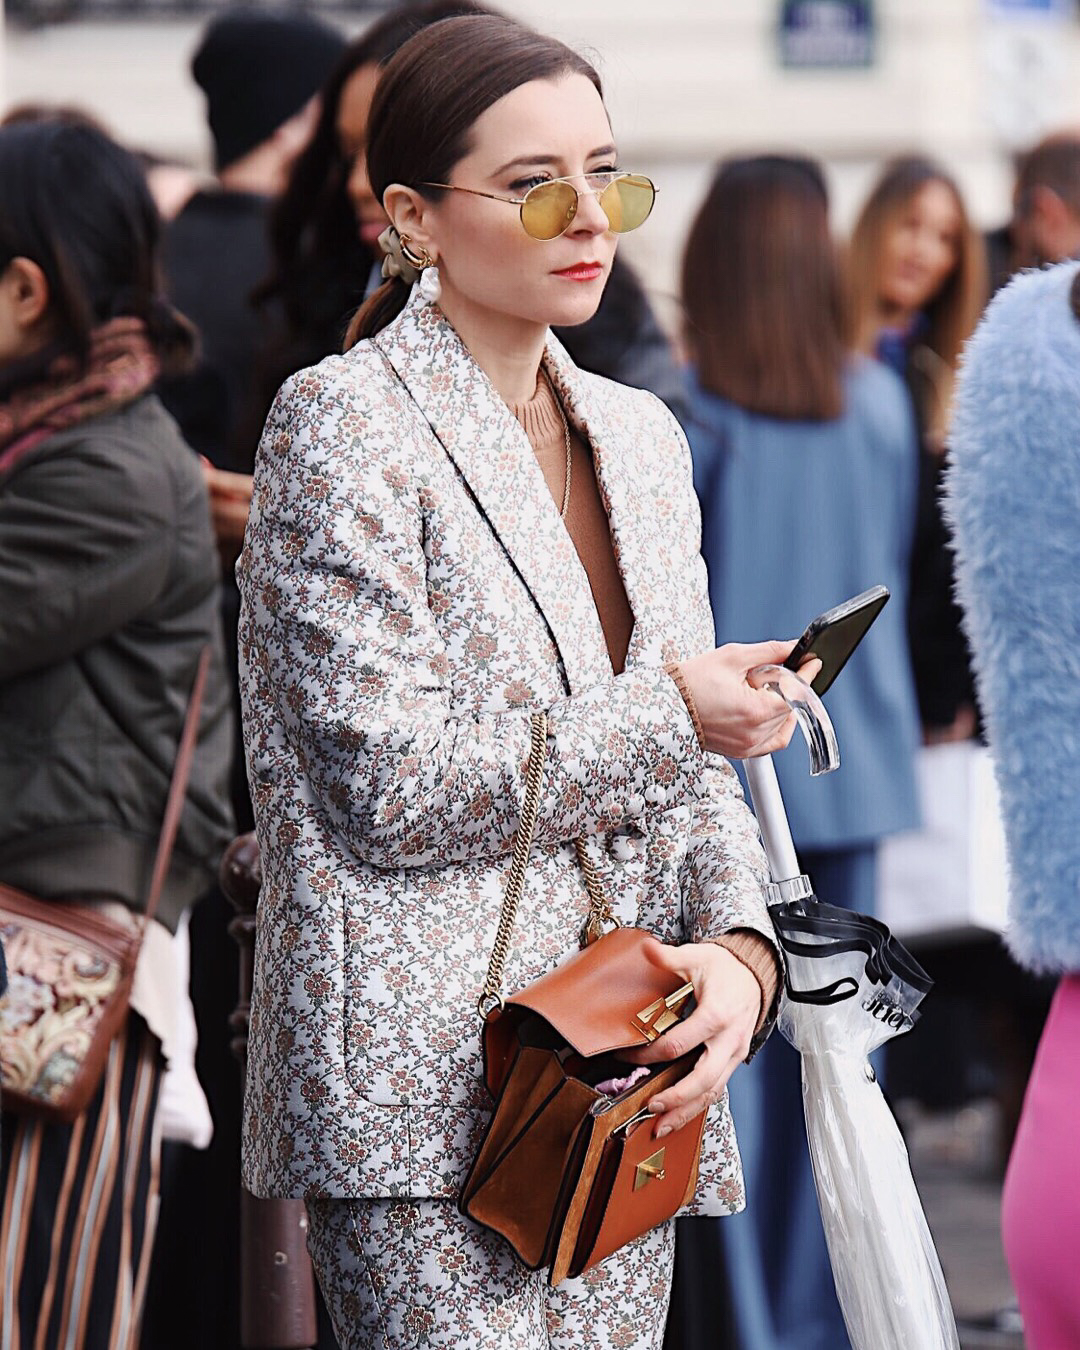 52651be2f724 Best Street Style Fashion Week Mars 2019 Julia Comil / French Fashion  Blogger in Los Angeles